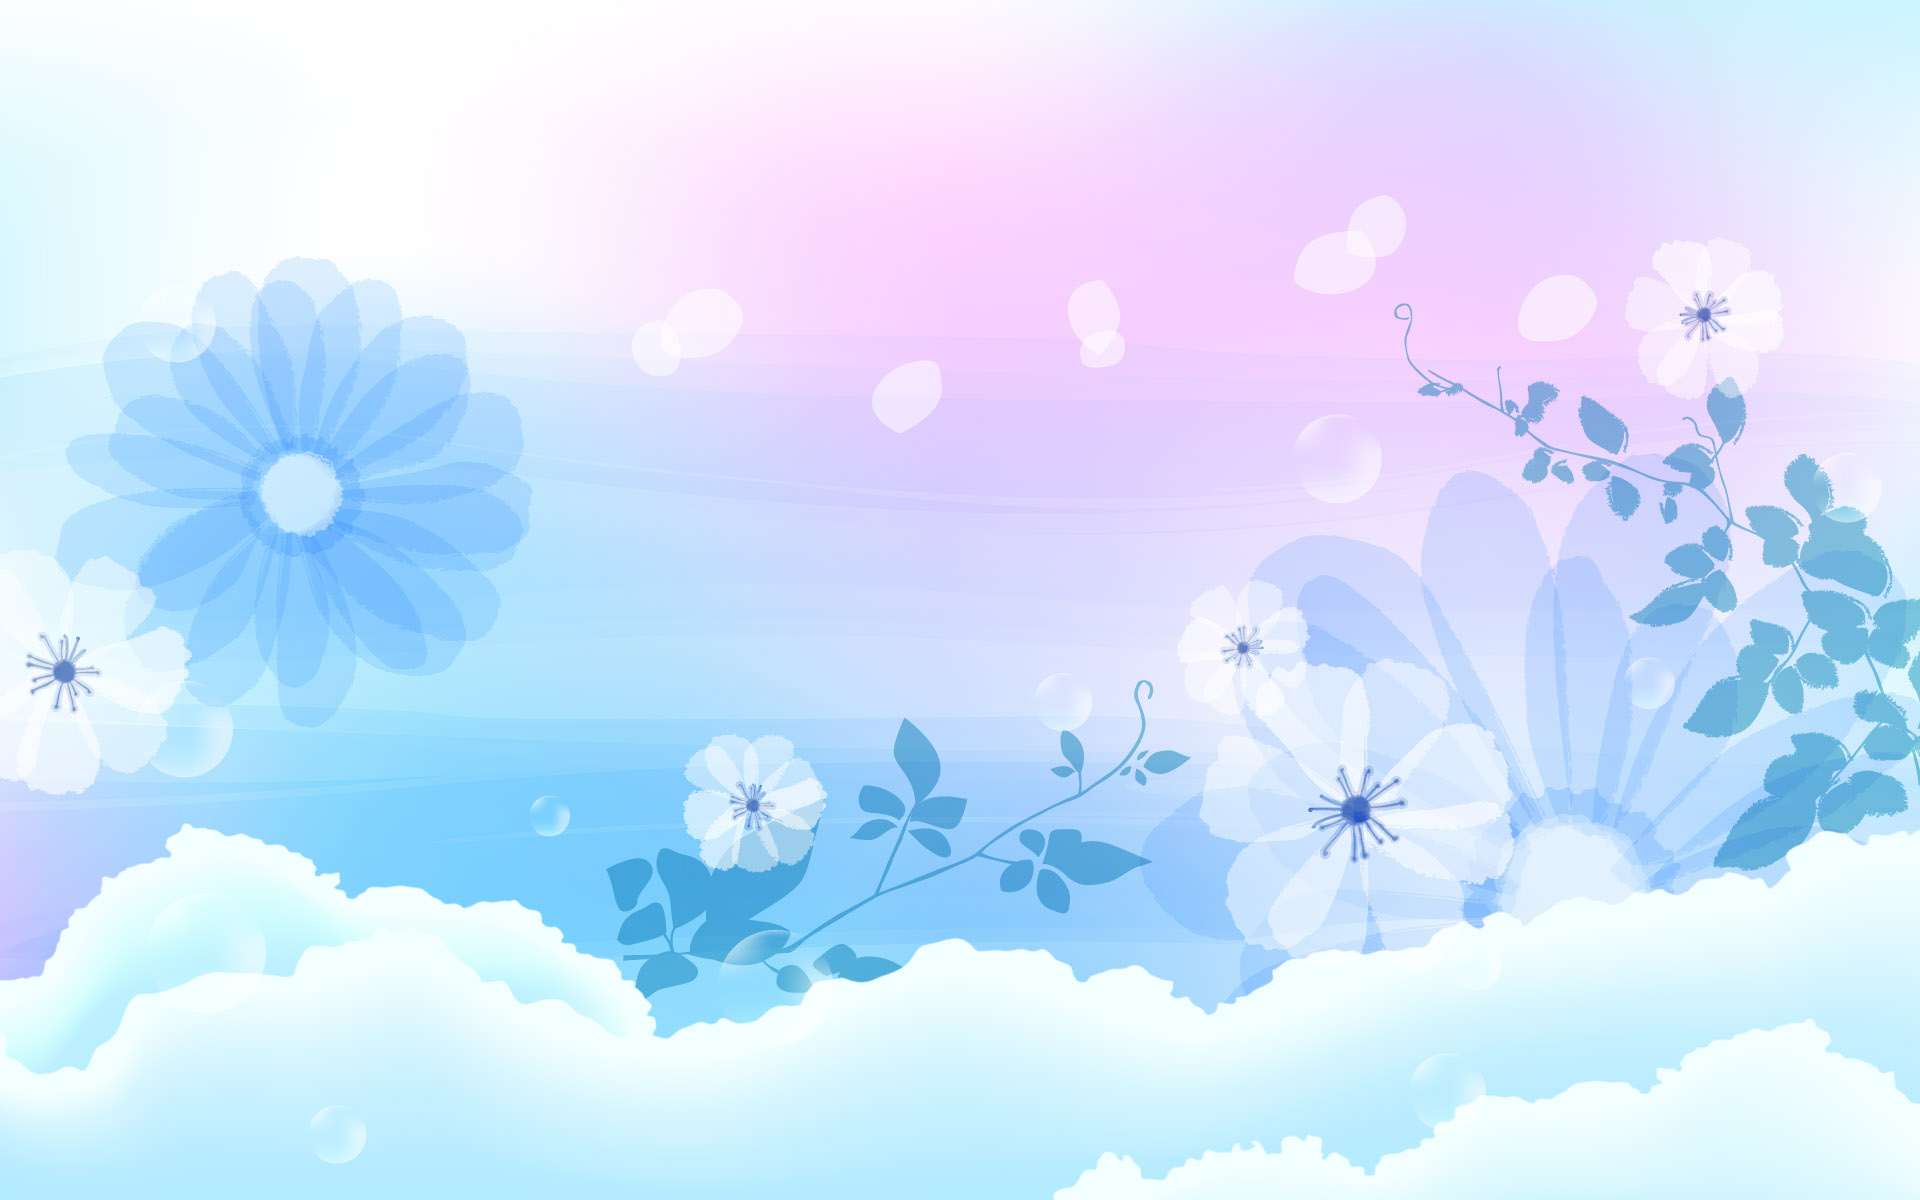 the colors of the wallpaper fit so well light blue and white the world 1920x1200